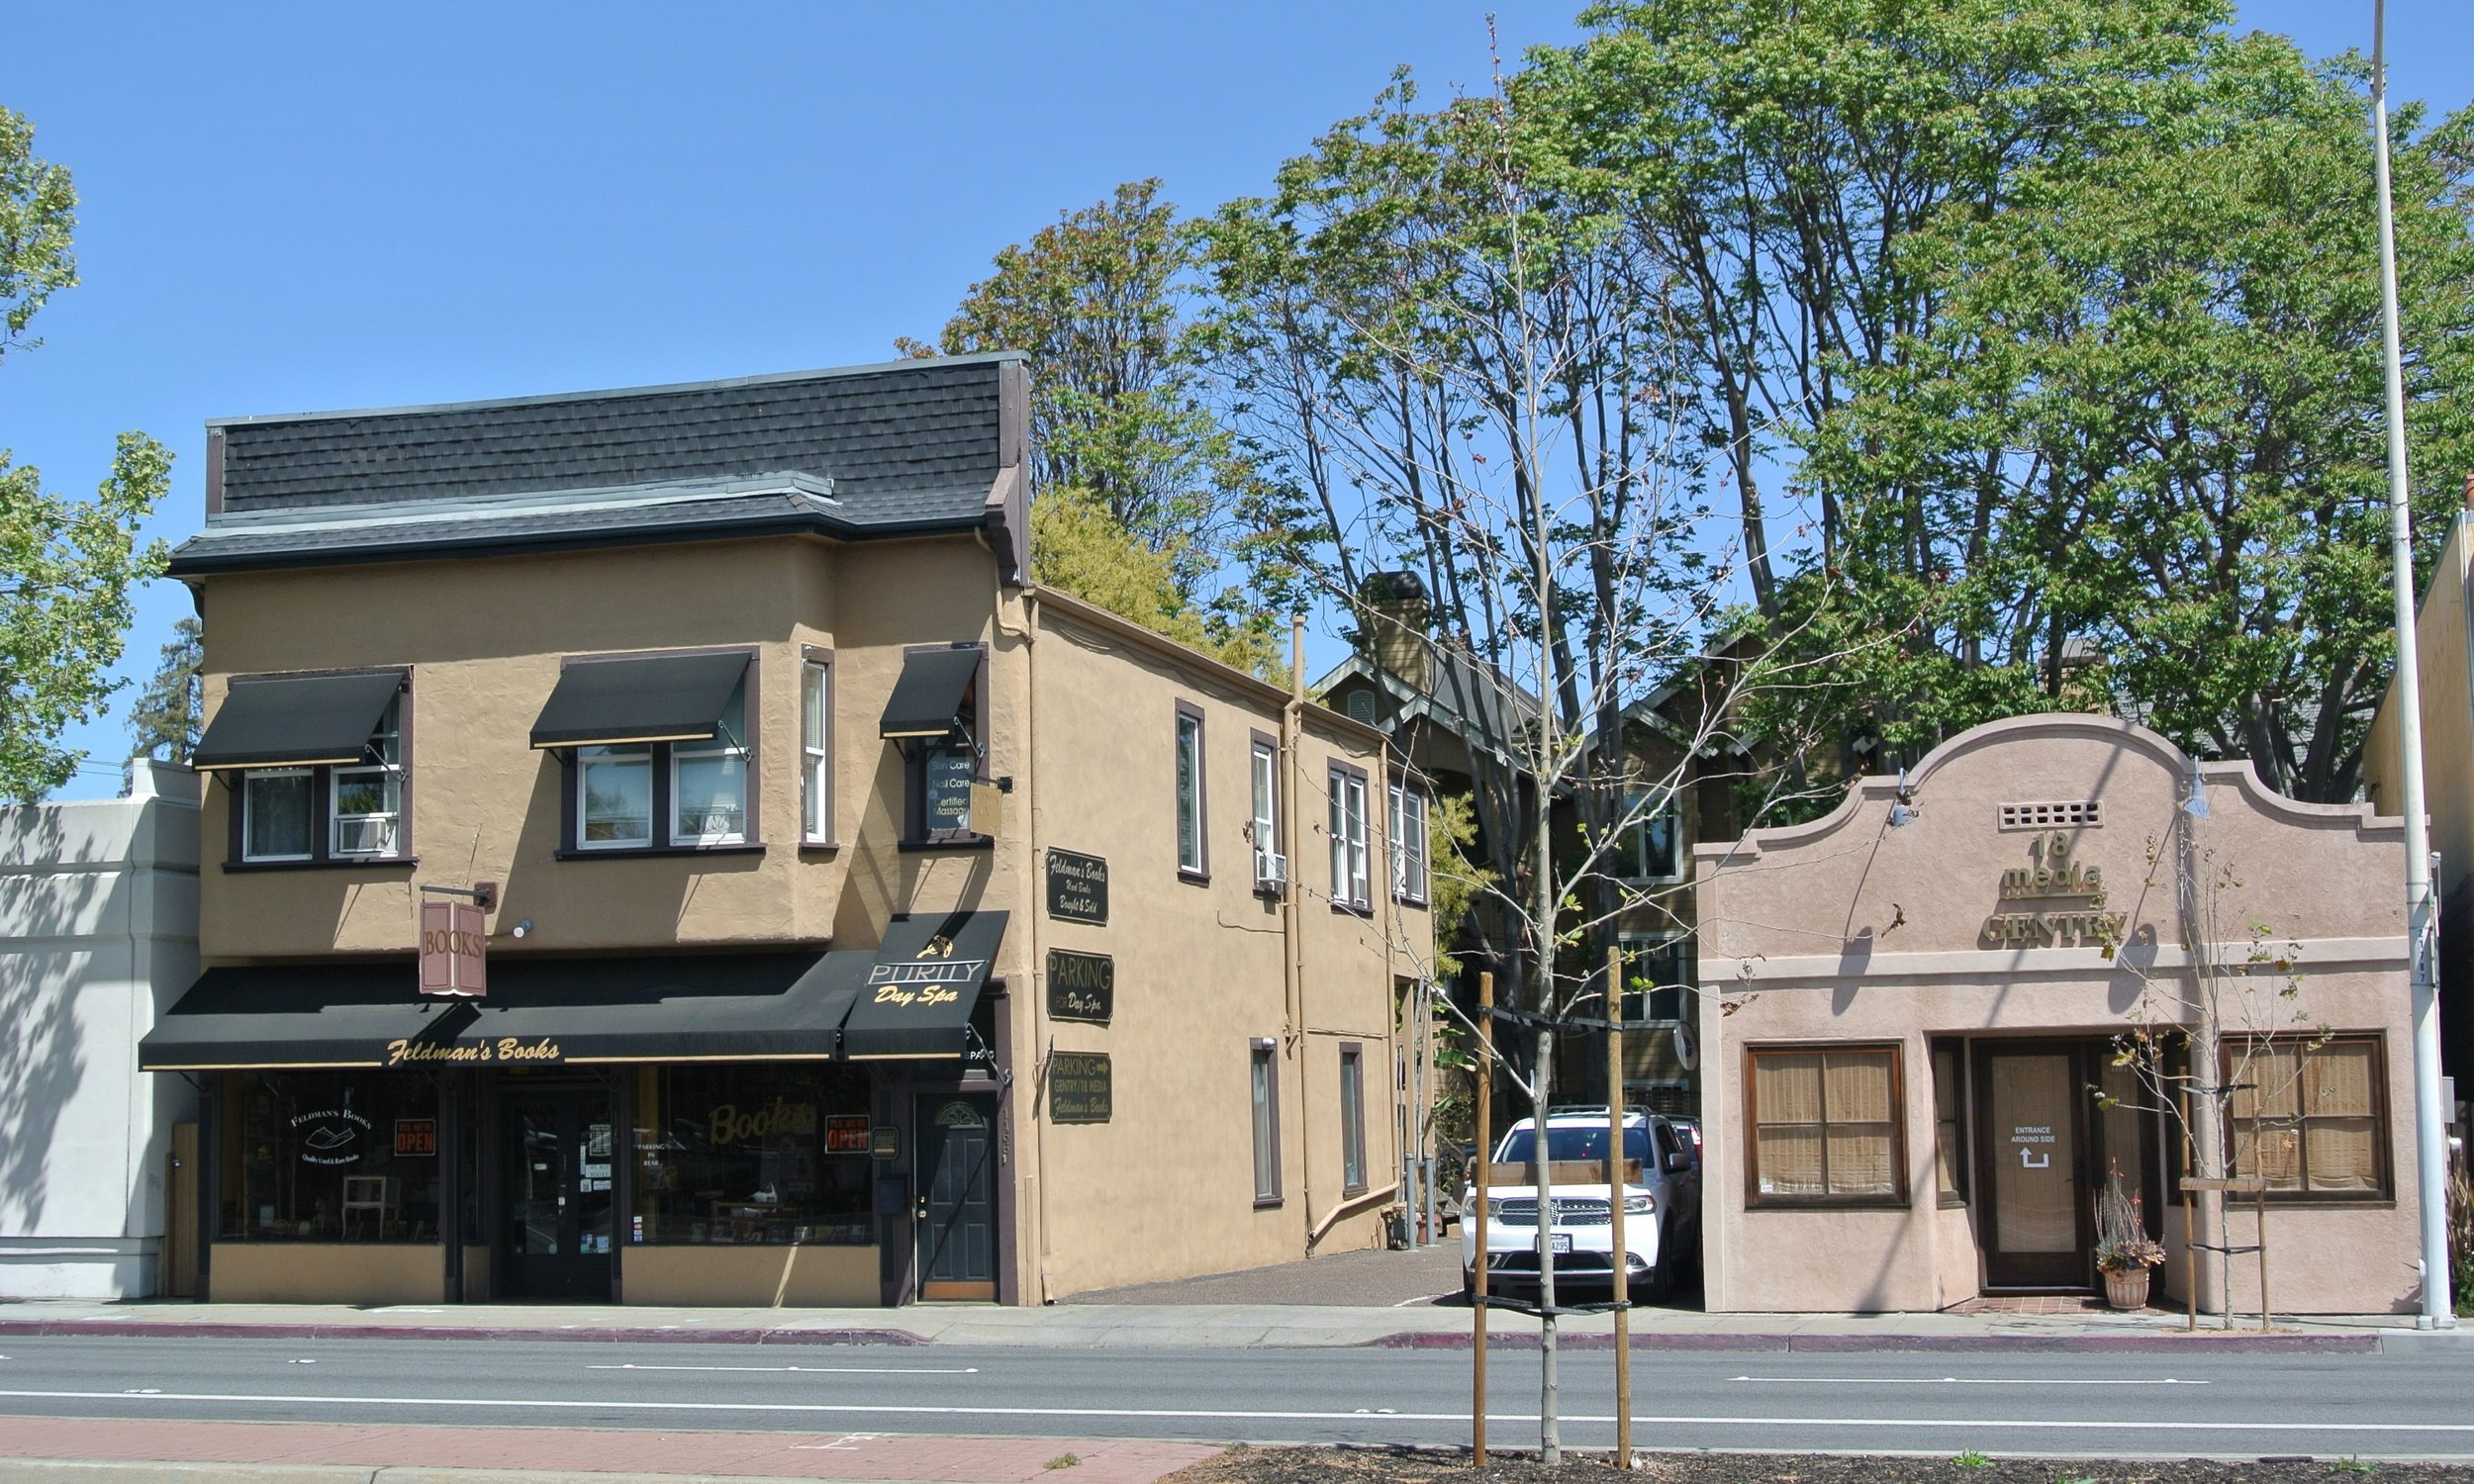 1162-1170 El Camino Real, Menlo Park, CA 94025 4,728 SF Property on 8,373 SF Parcel $3,400,000